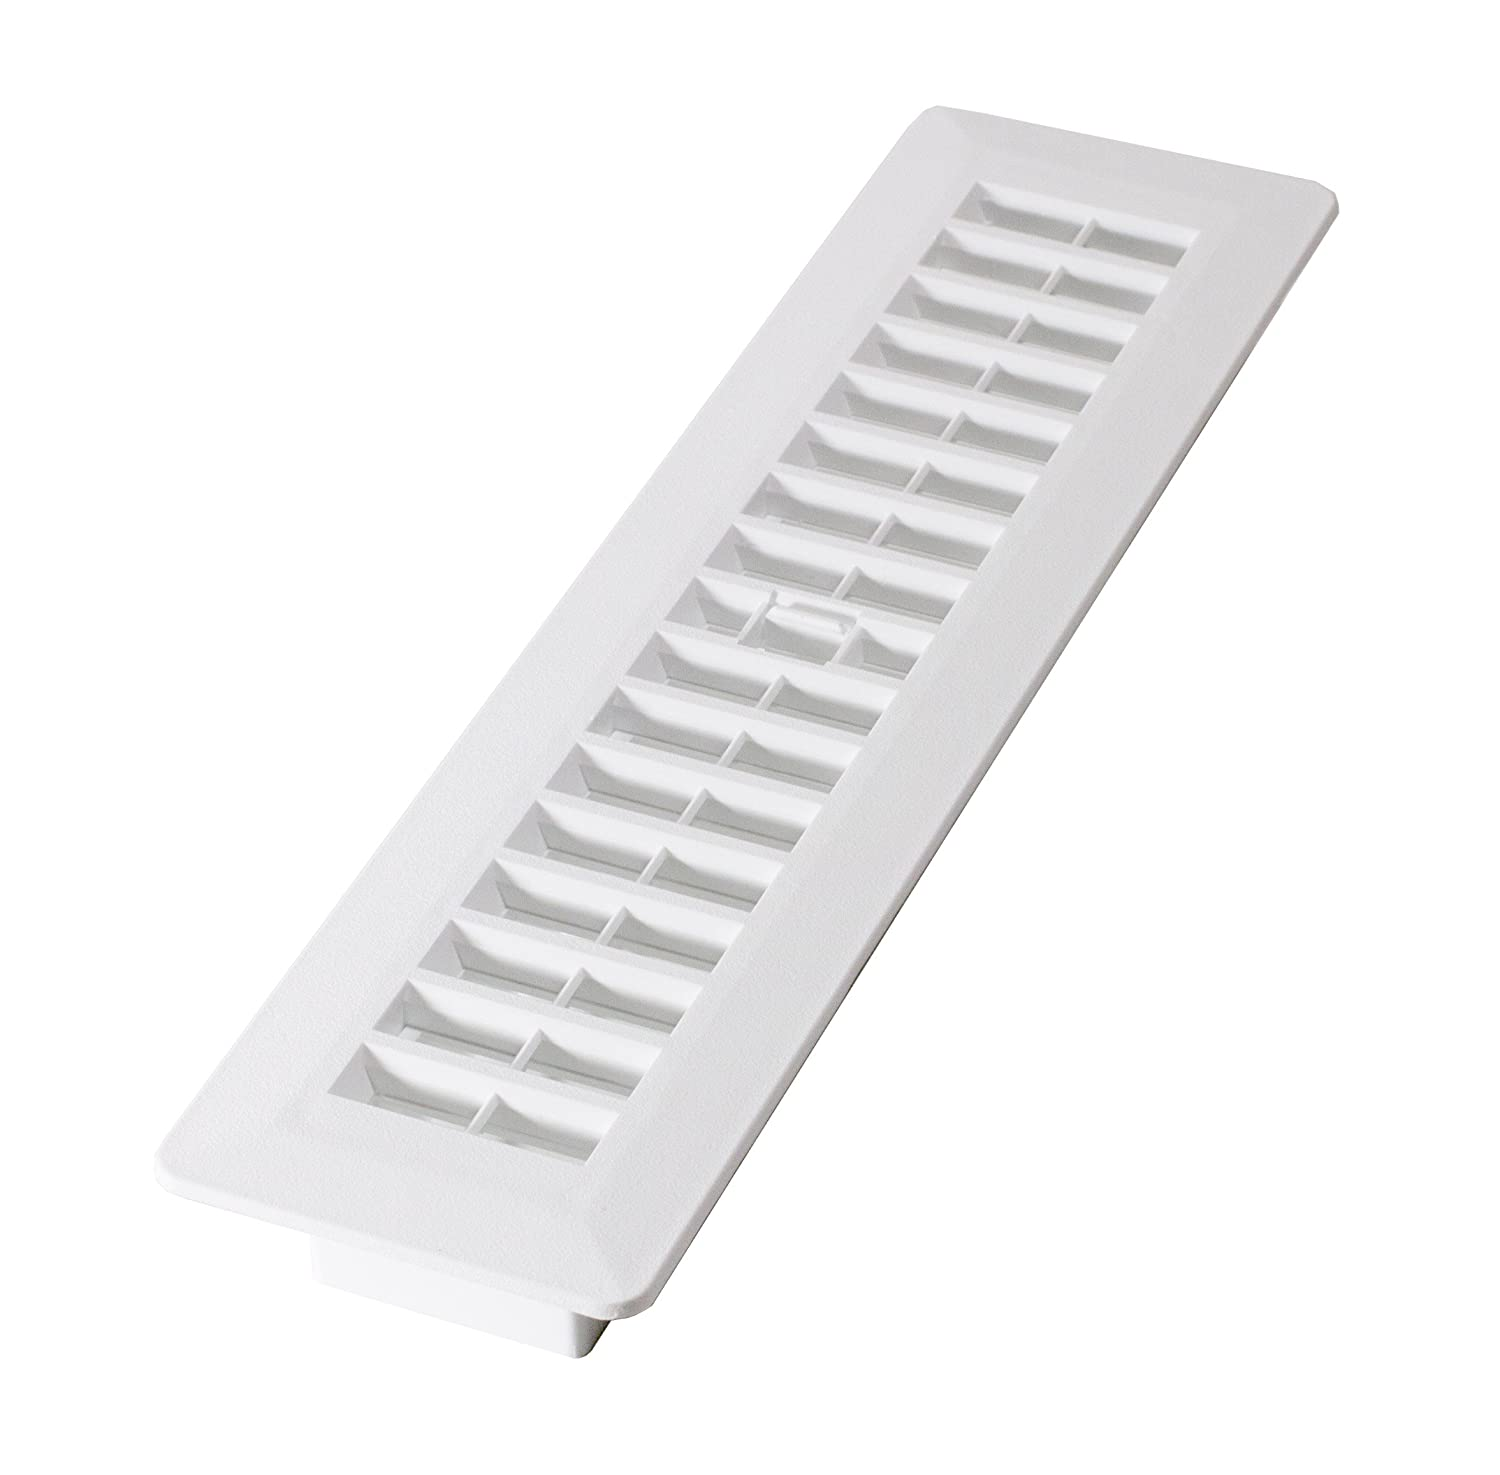 Decor Grates PL212-WH 2-Inch by 12-Inch Plastic Floor Register, White